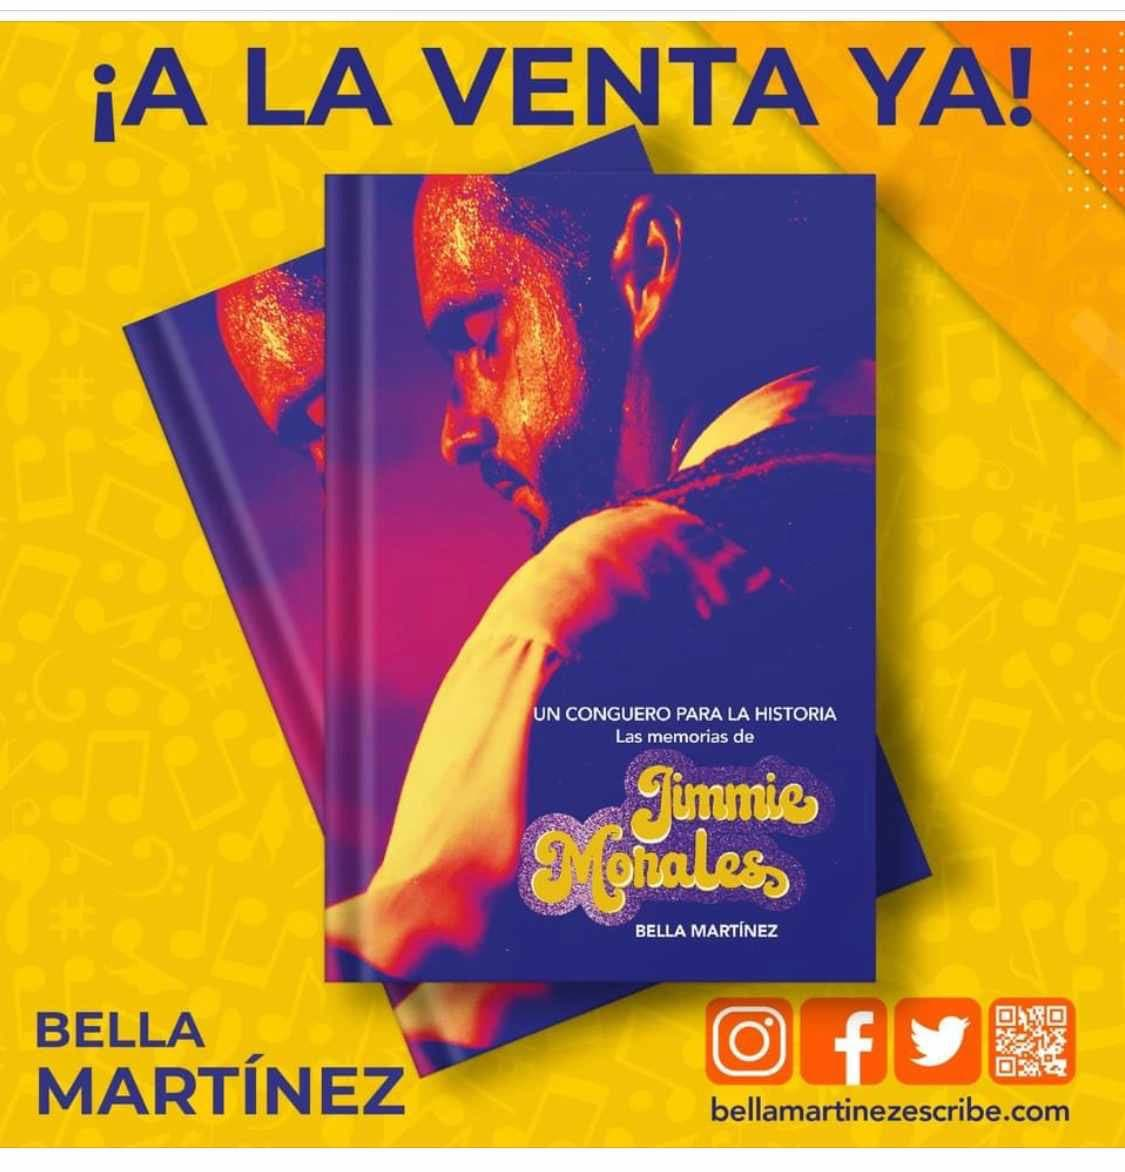 Bella Martínez wrote a book about Jimmie Morales